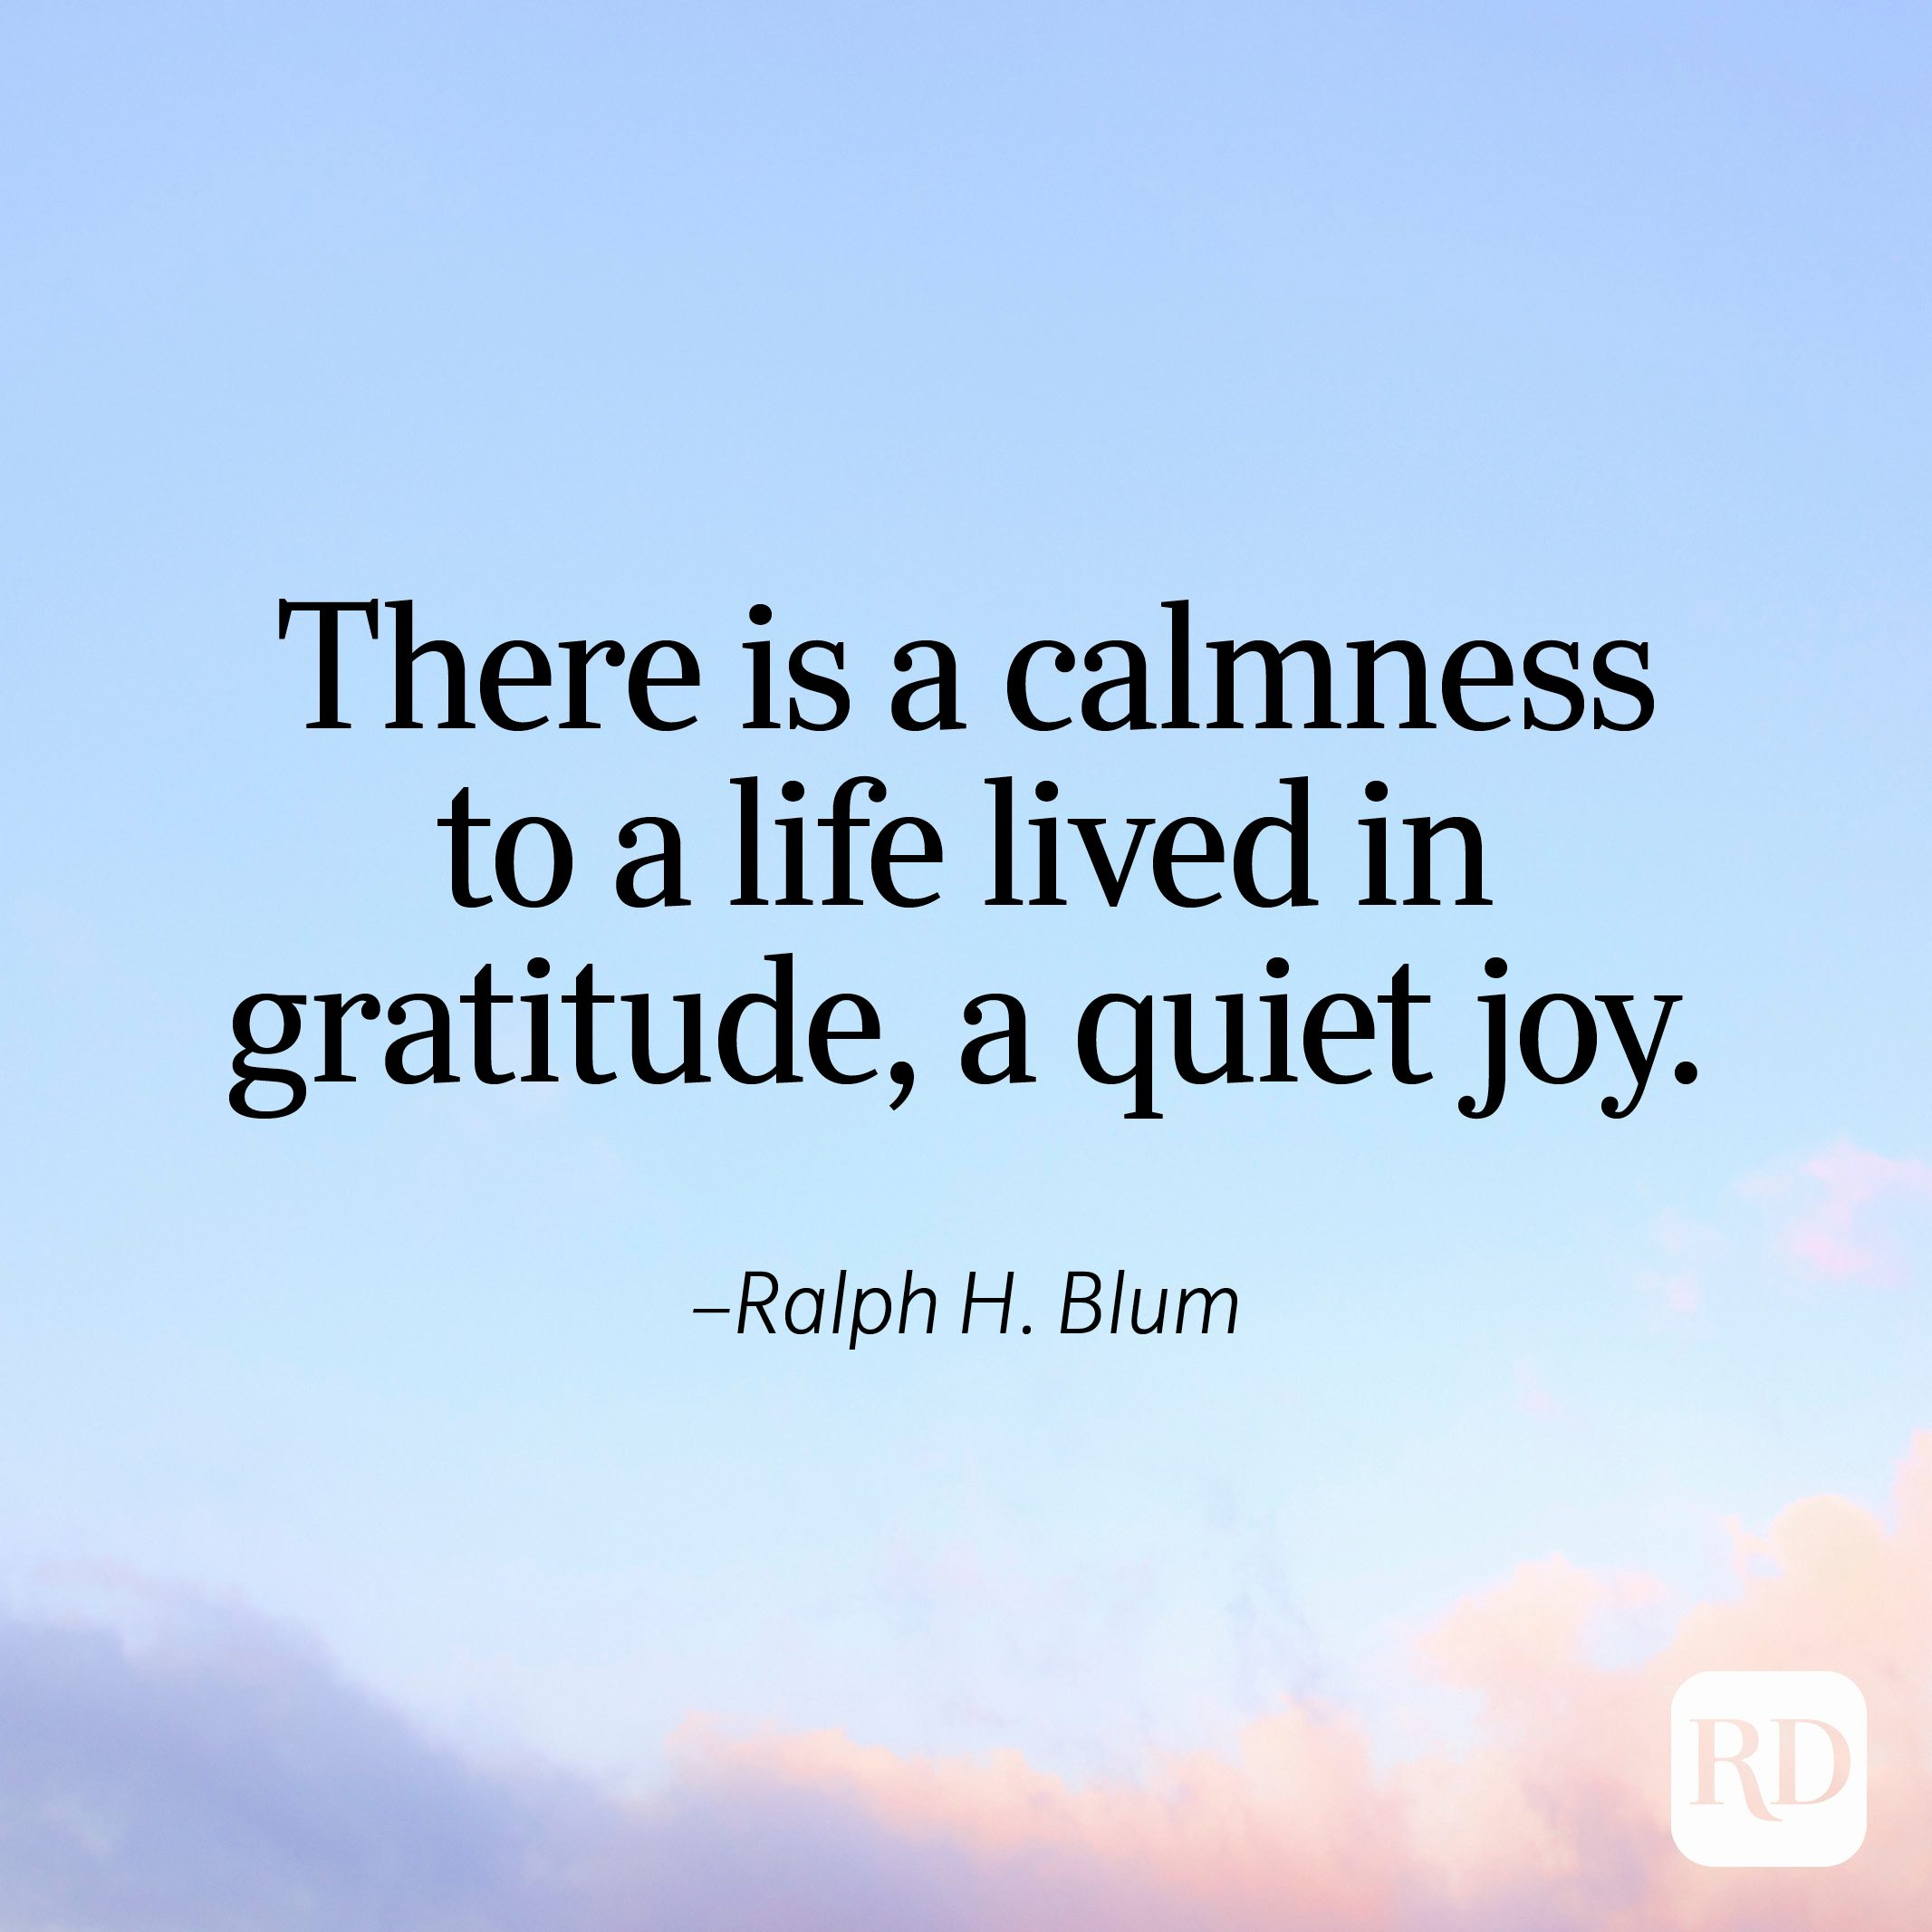 """""""There is a calmness to a life lived in gratitude, a quiet joy."""" —Ralph H. Blum"""